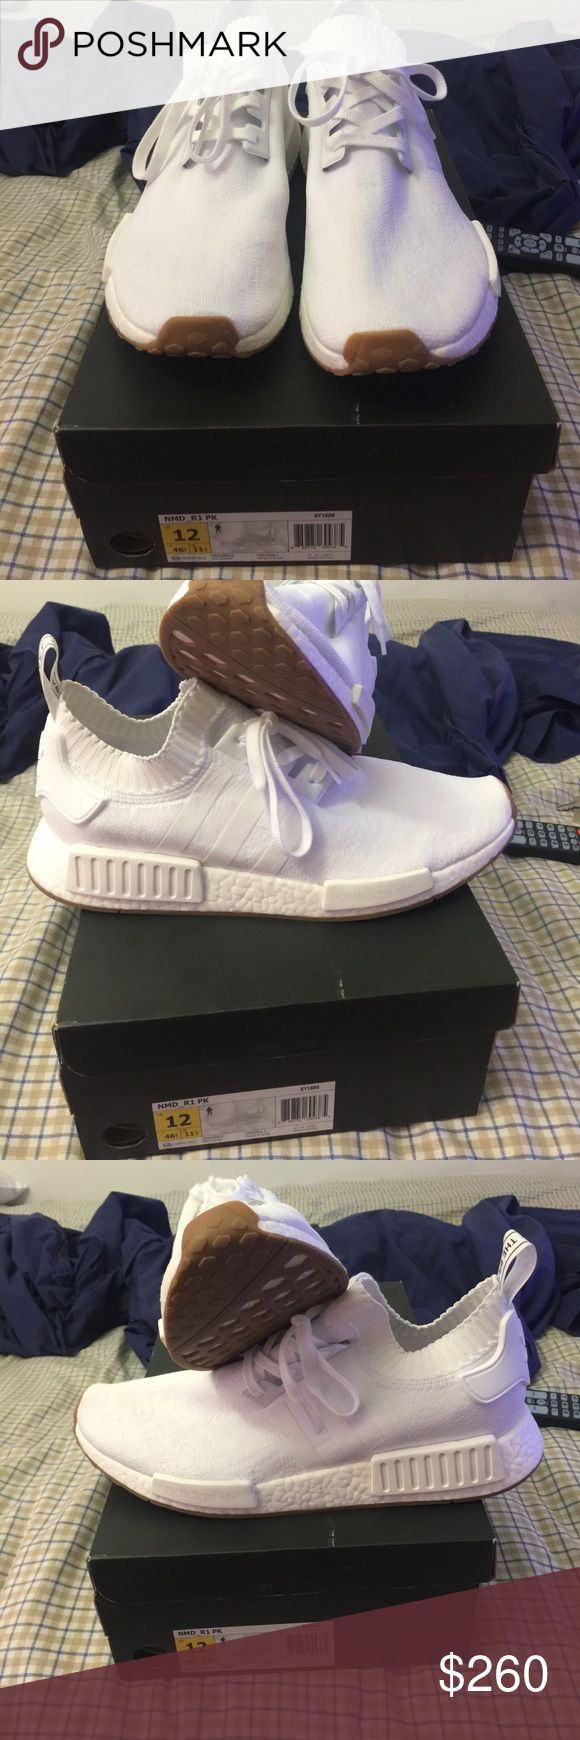 Adidas NMD_R1 PK All white with gum bottoms. Almost new condition. Worn once. Can't get them on footlocker Flight club these are 225$. Give me a fair offer on them. No low balling thanks Adidas Shoes Athletic Shoes